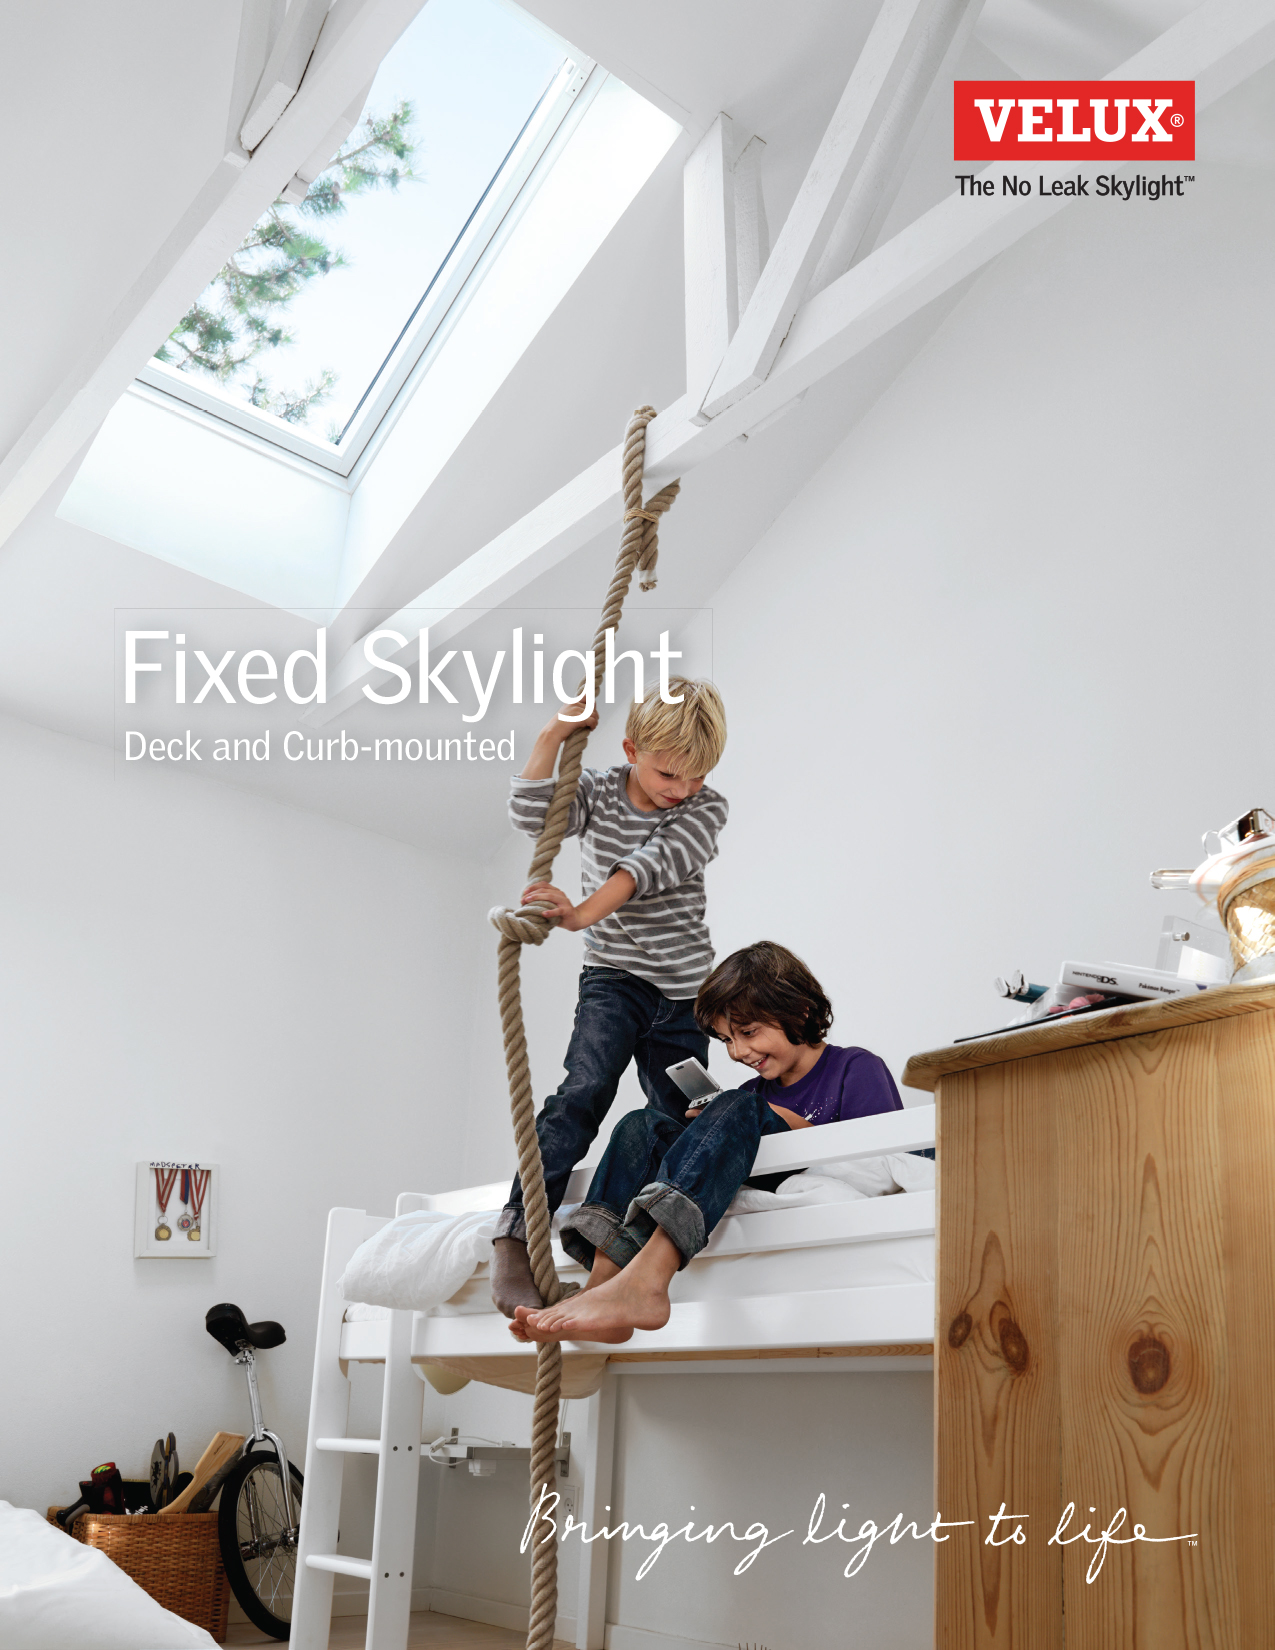 fixedskylight-productguide